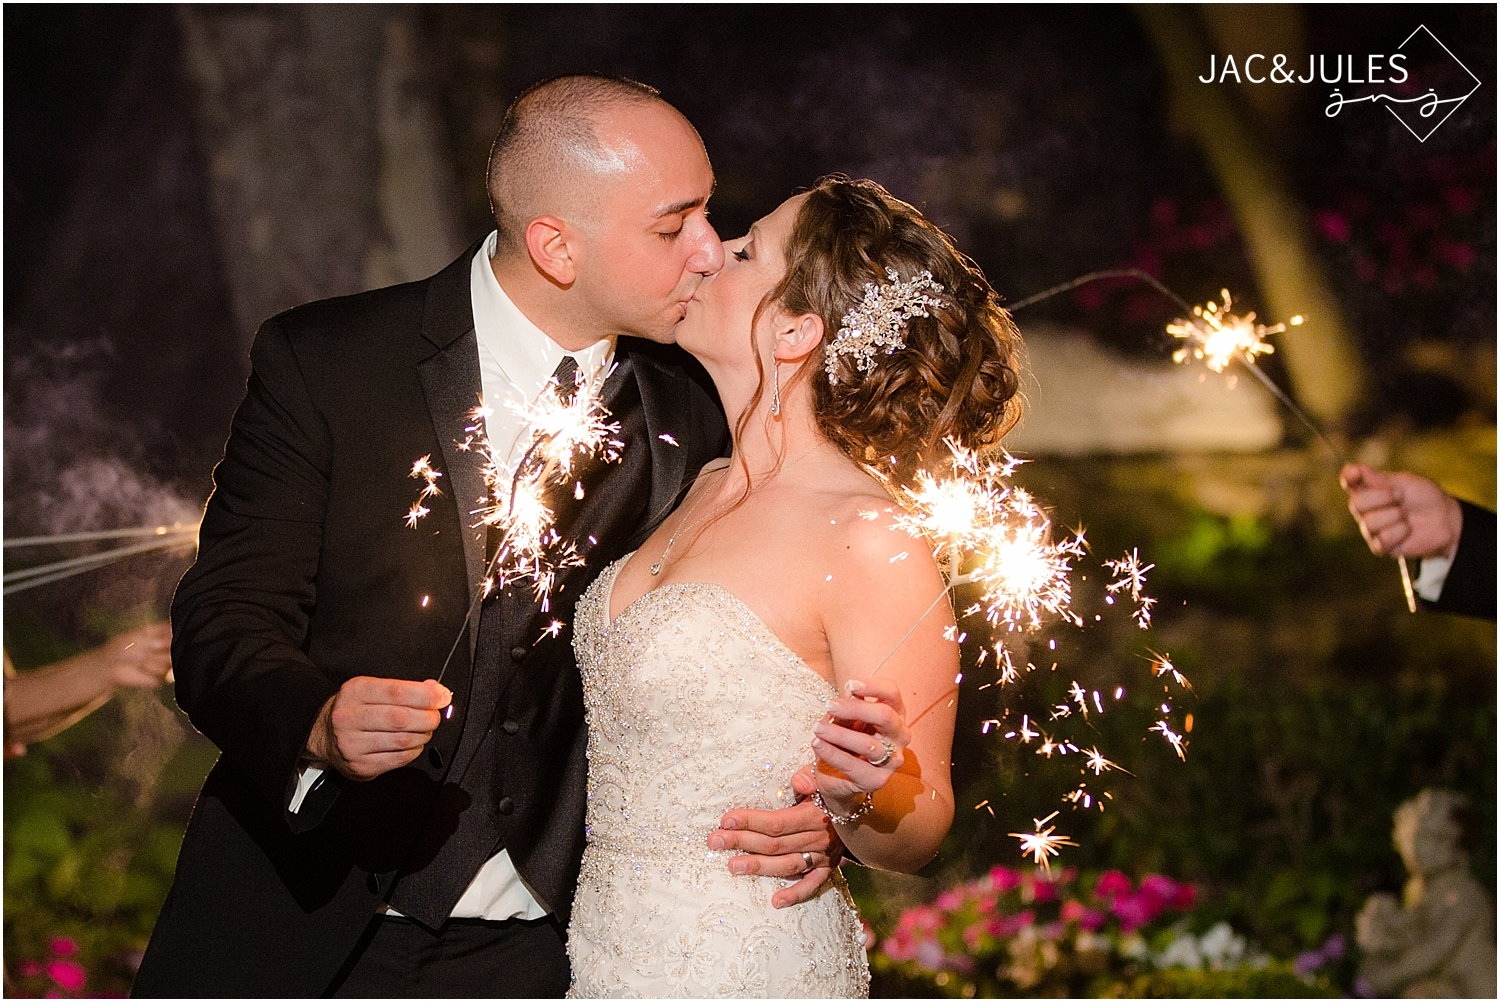 jacnjules photograph a sparkler exit at Nanina's in the Park in West Orange, NJ